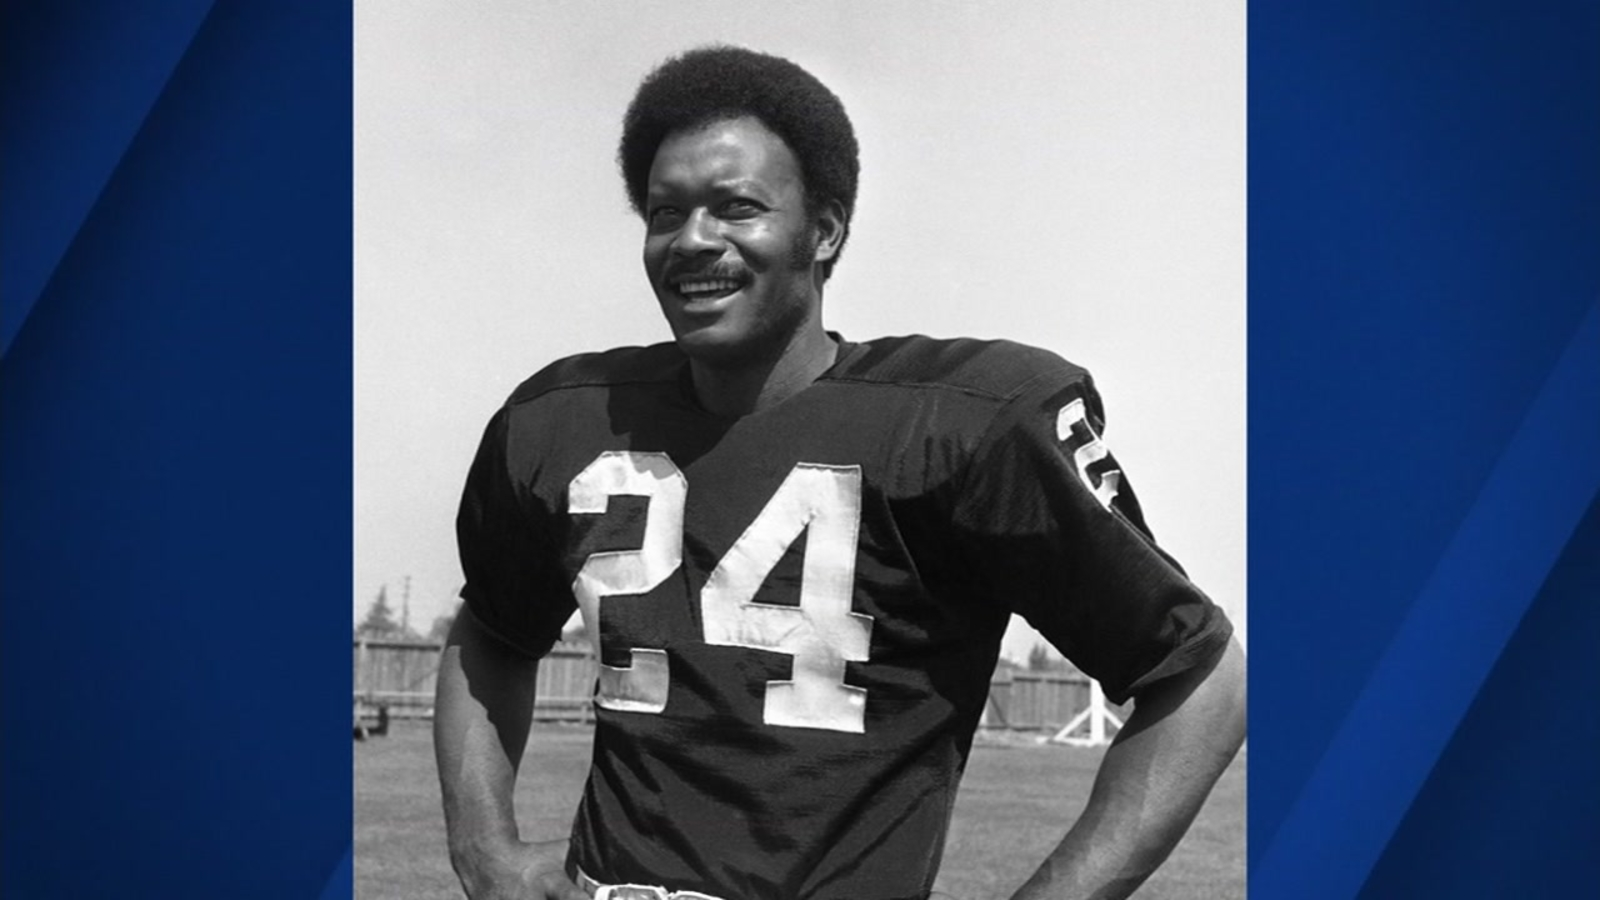 Legendary Oakland Raider Willie Brown has died